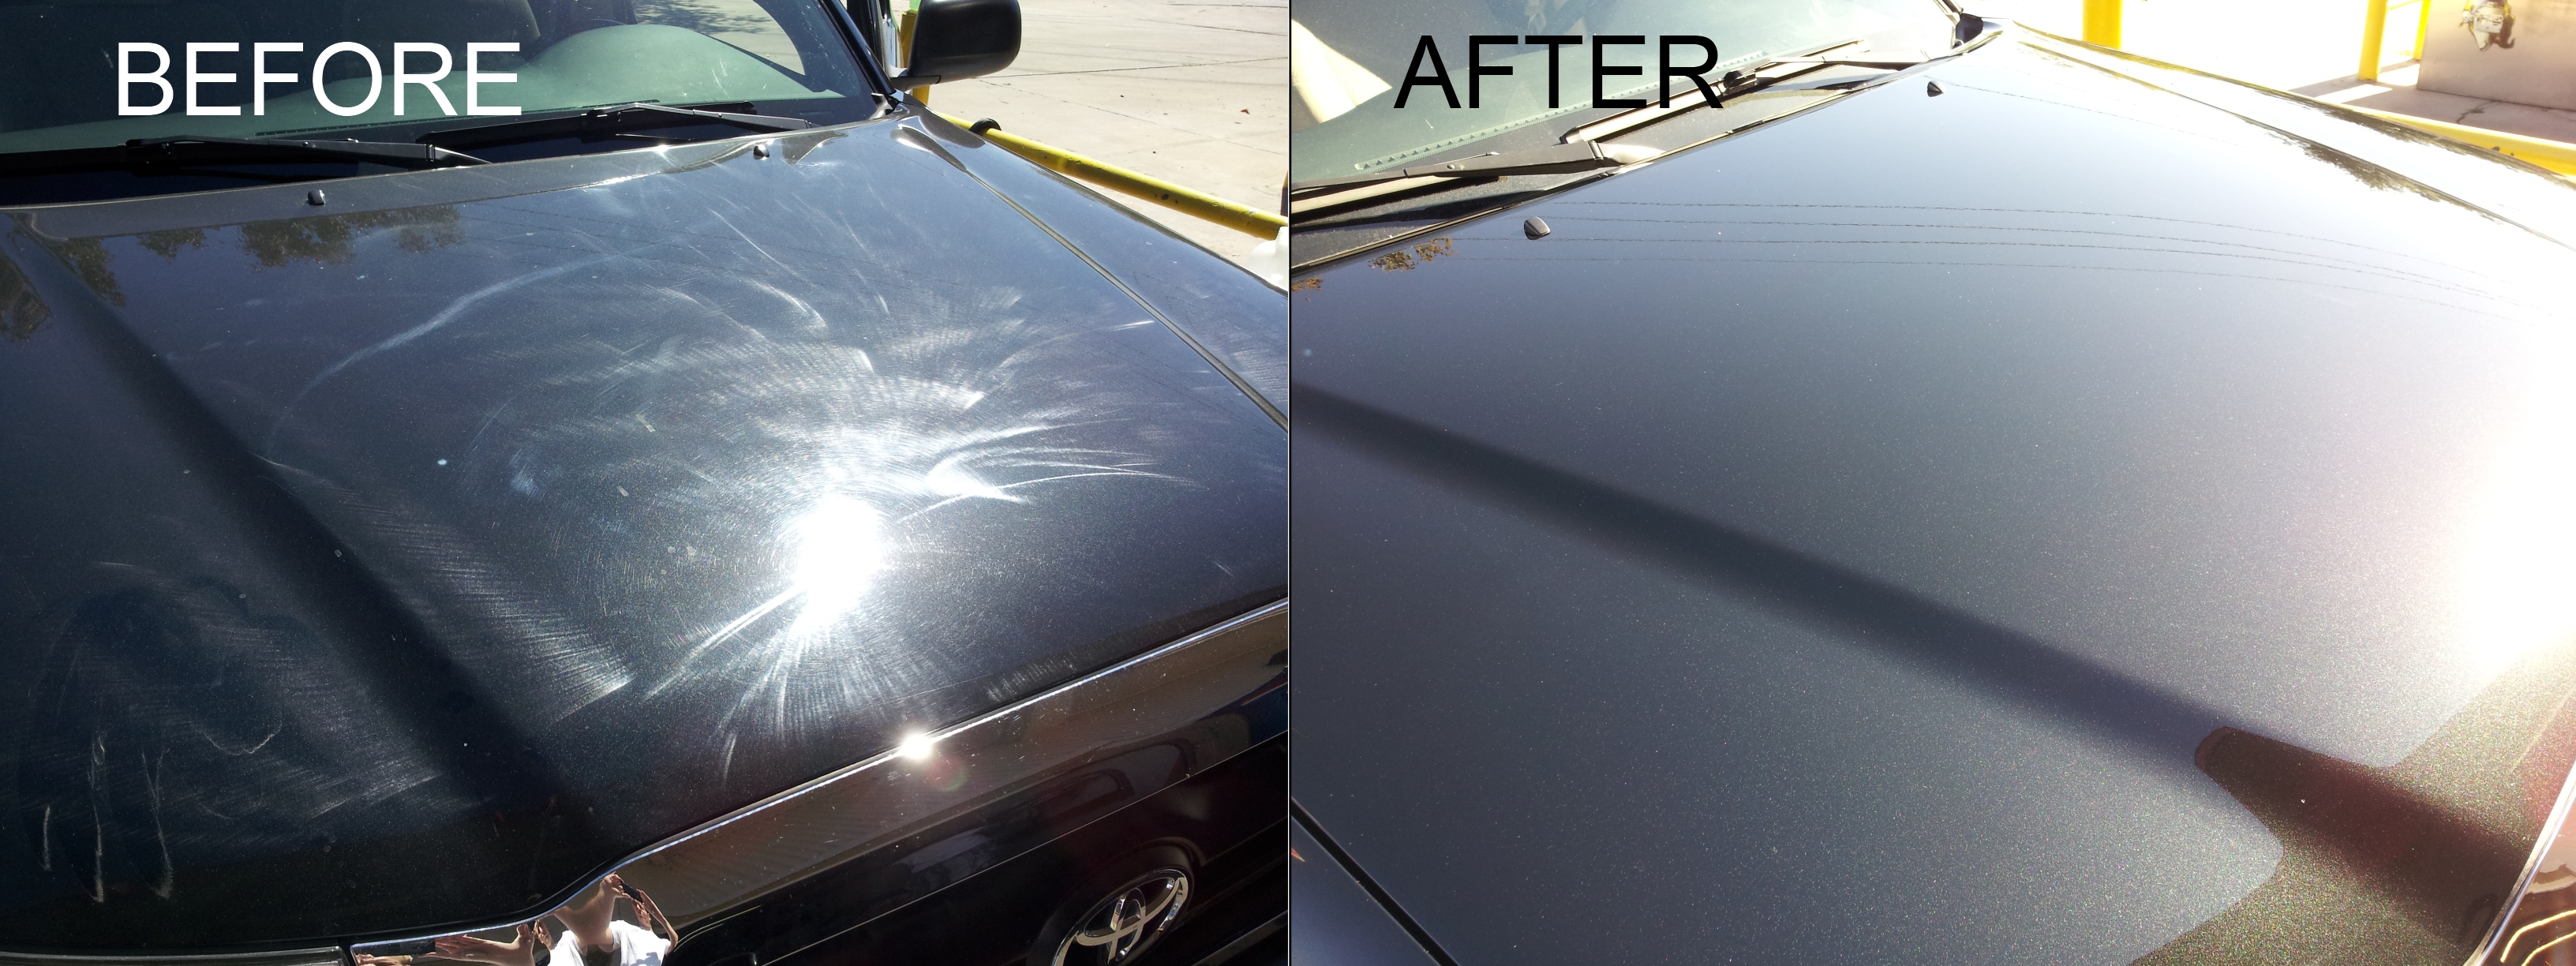 Before and after paint detailing